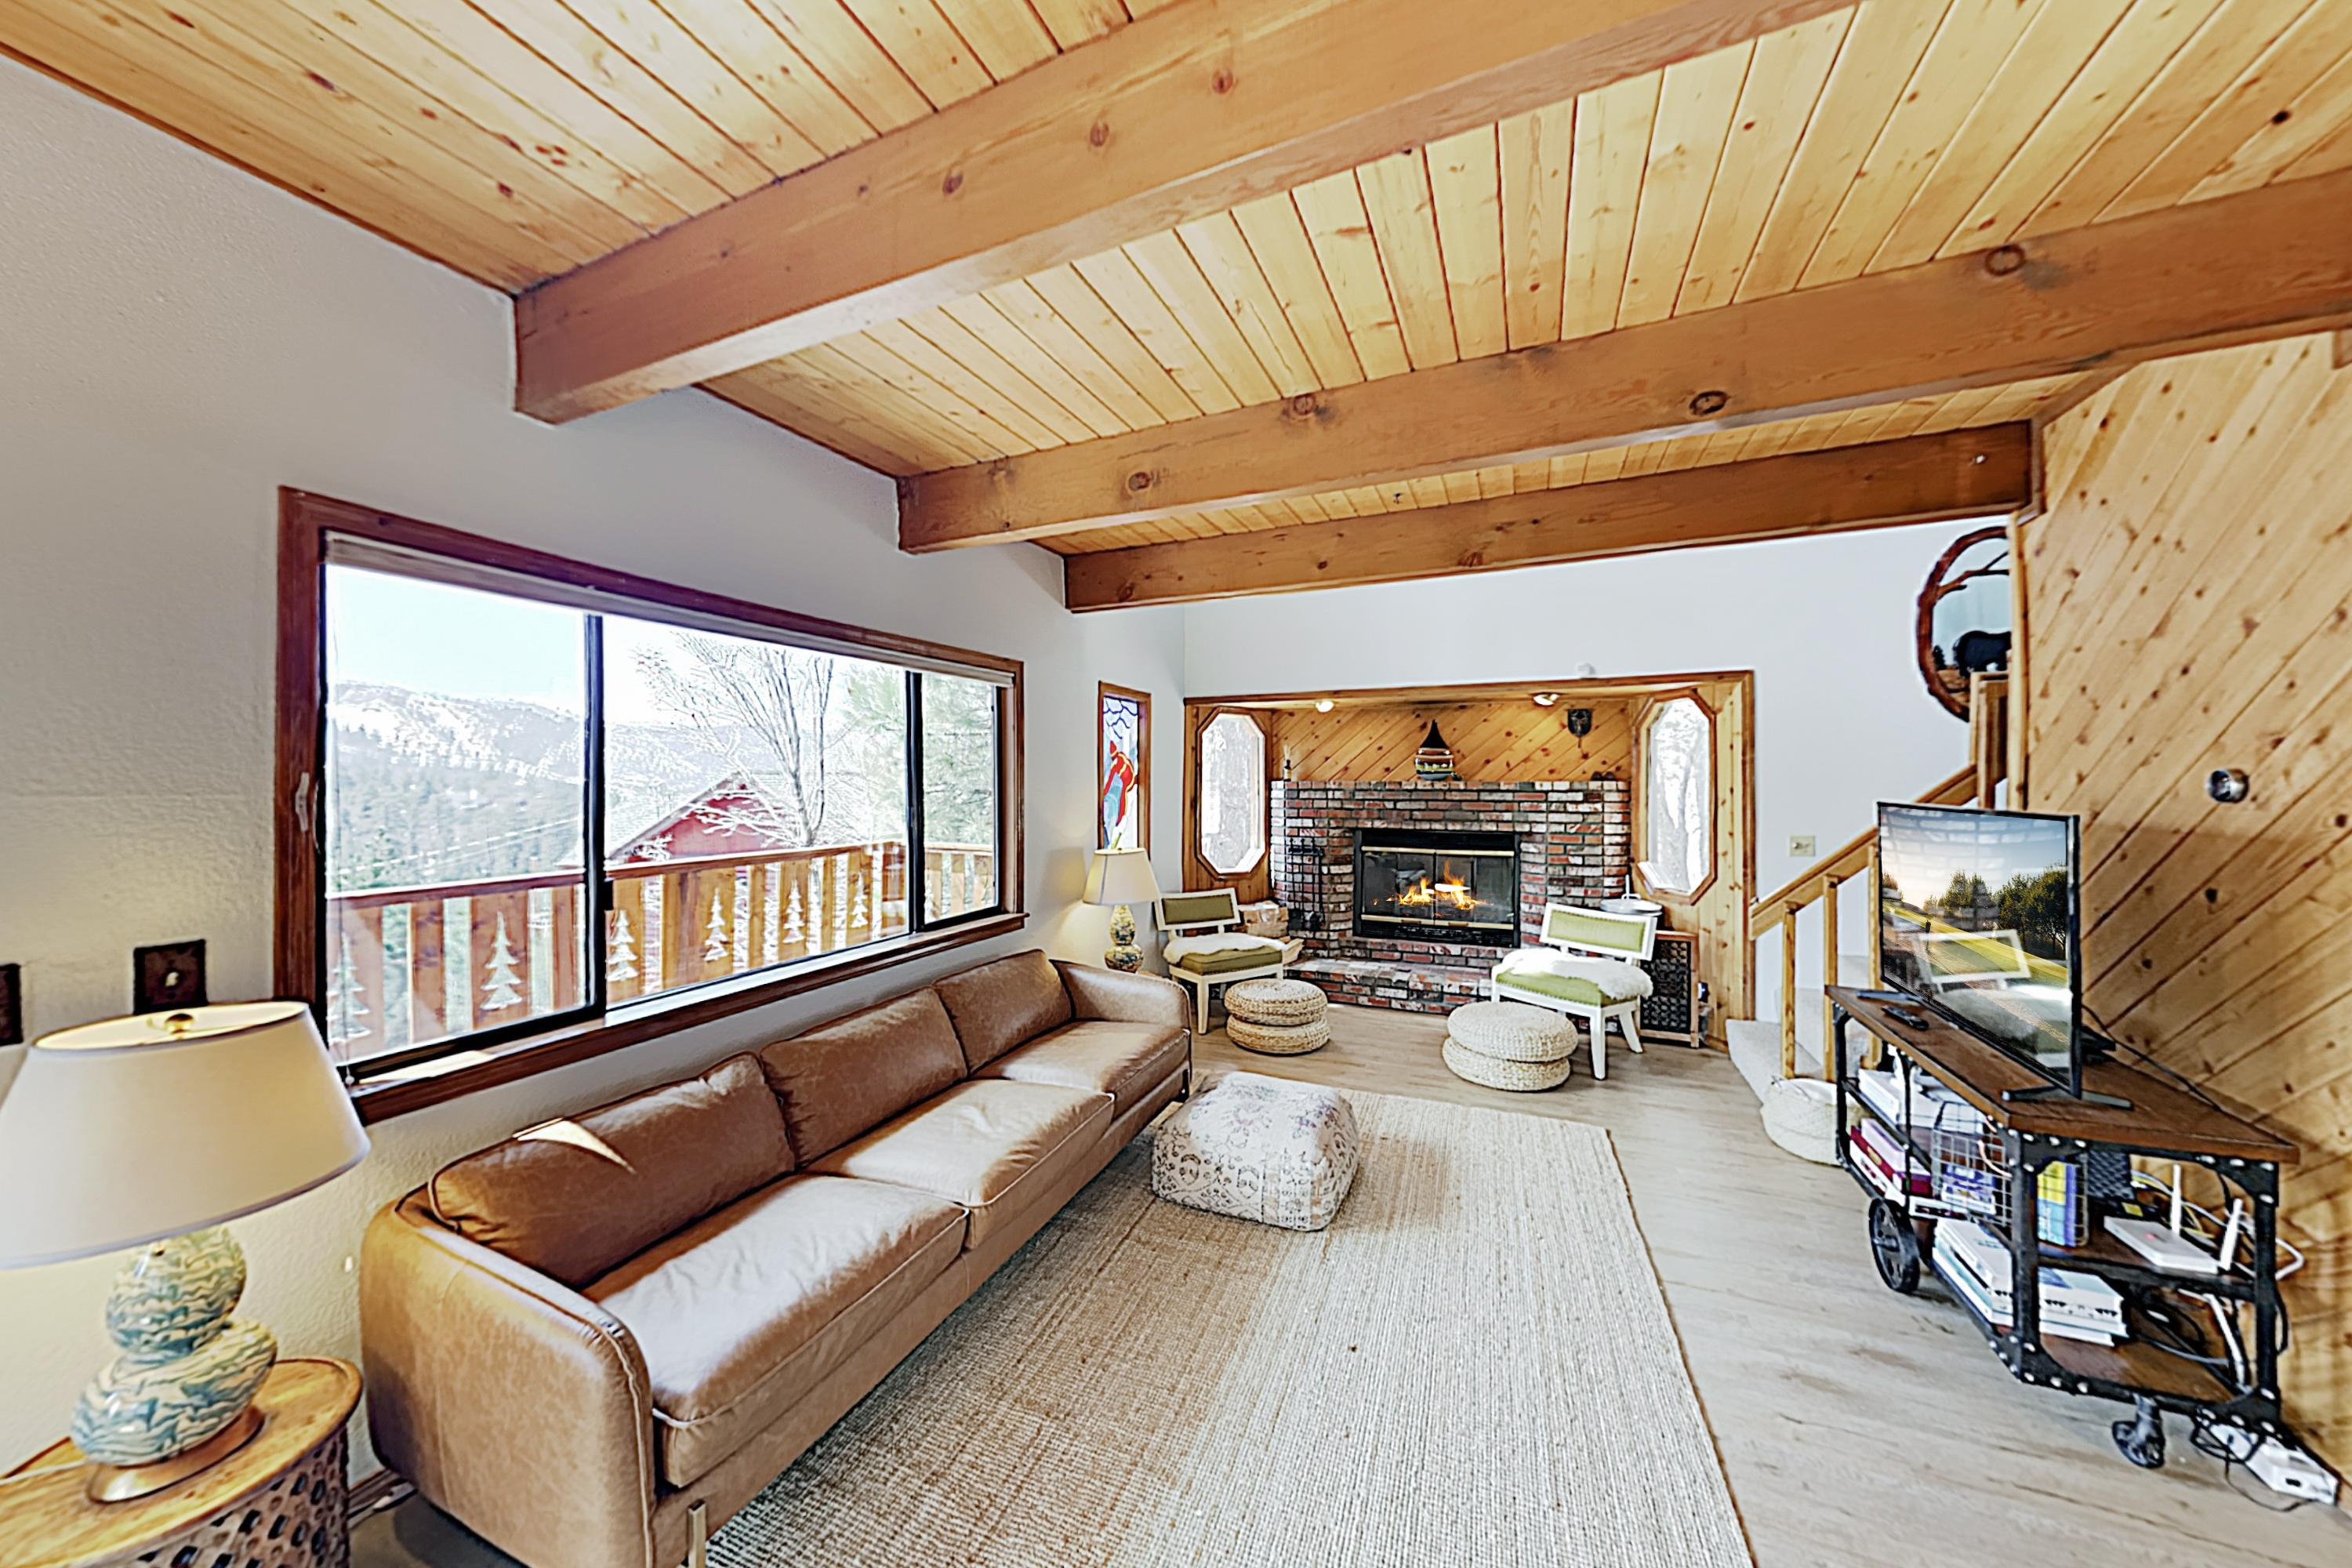 Property Image 2 - New Listing! Mountain-View Chalet Near the Slopes